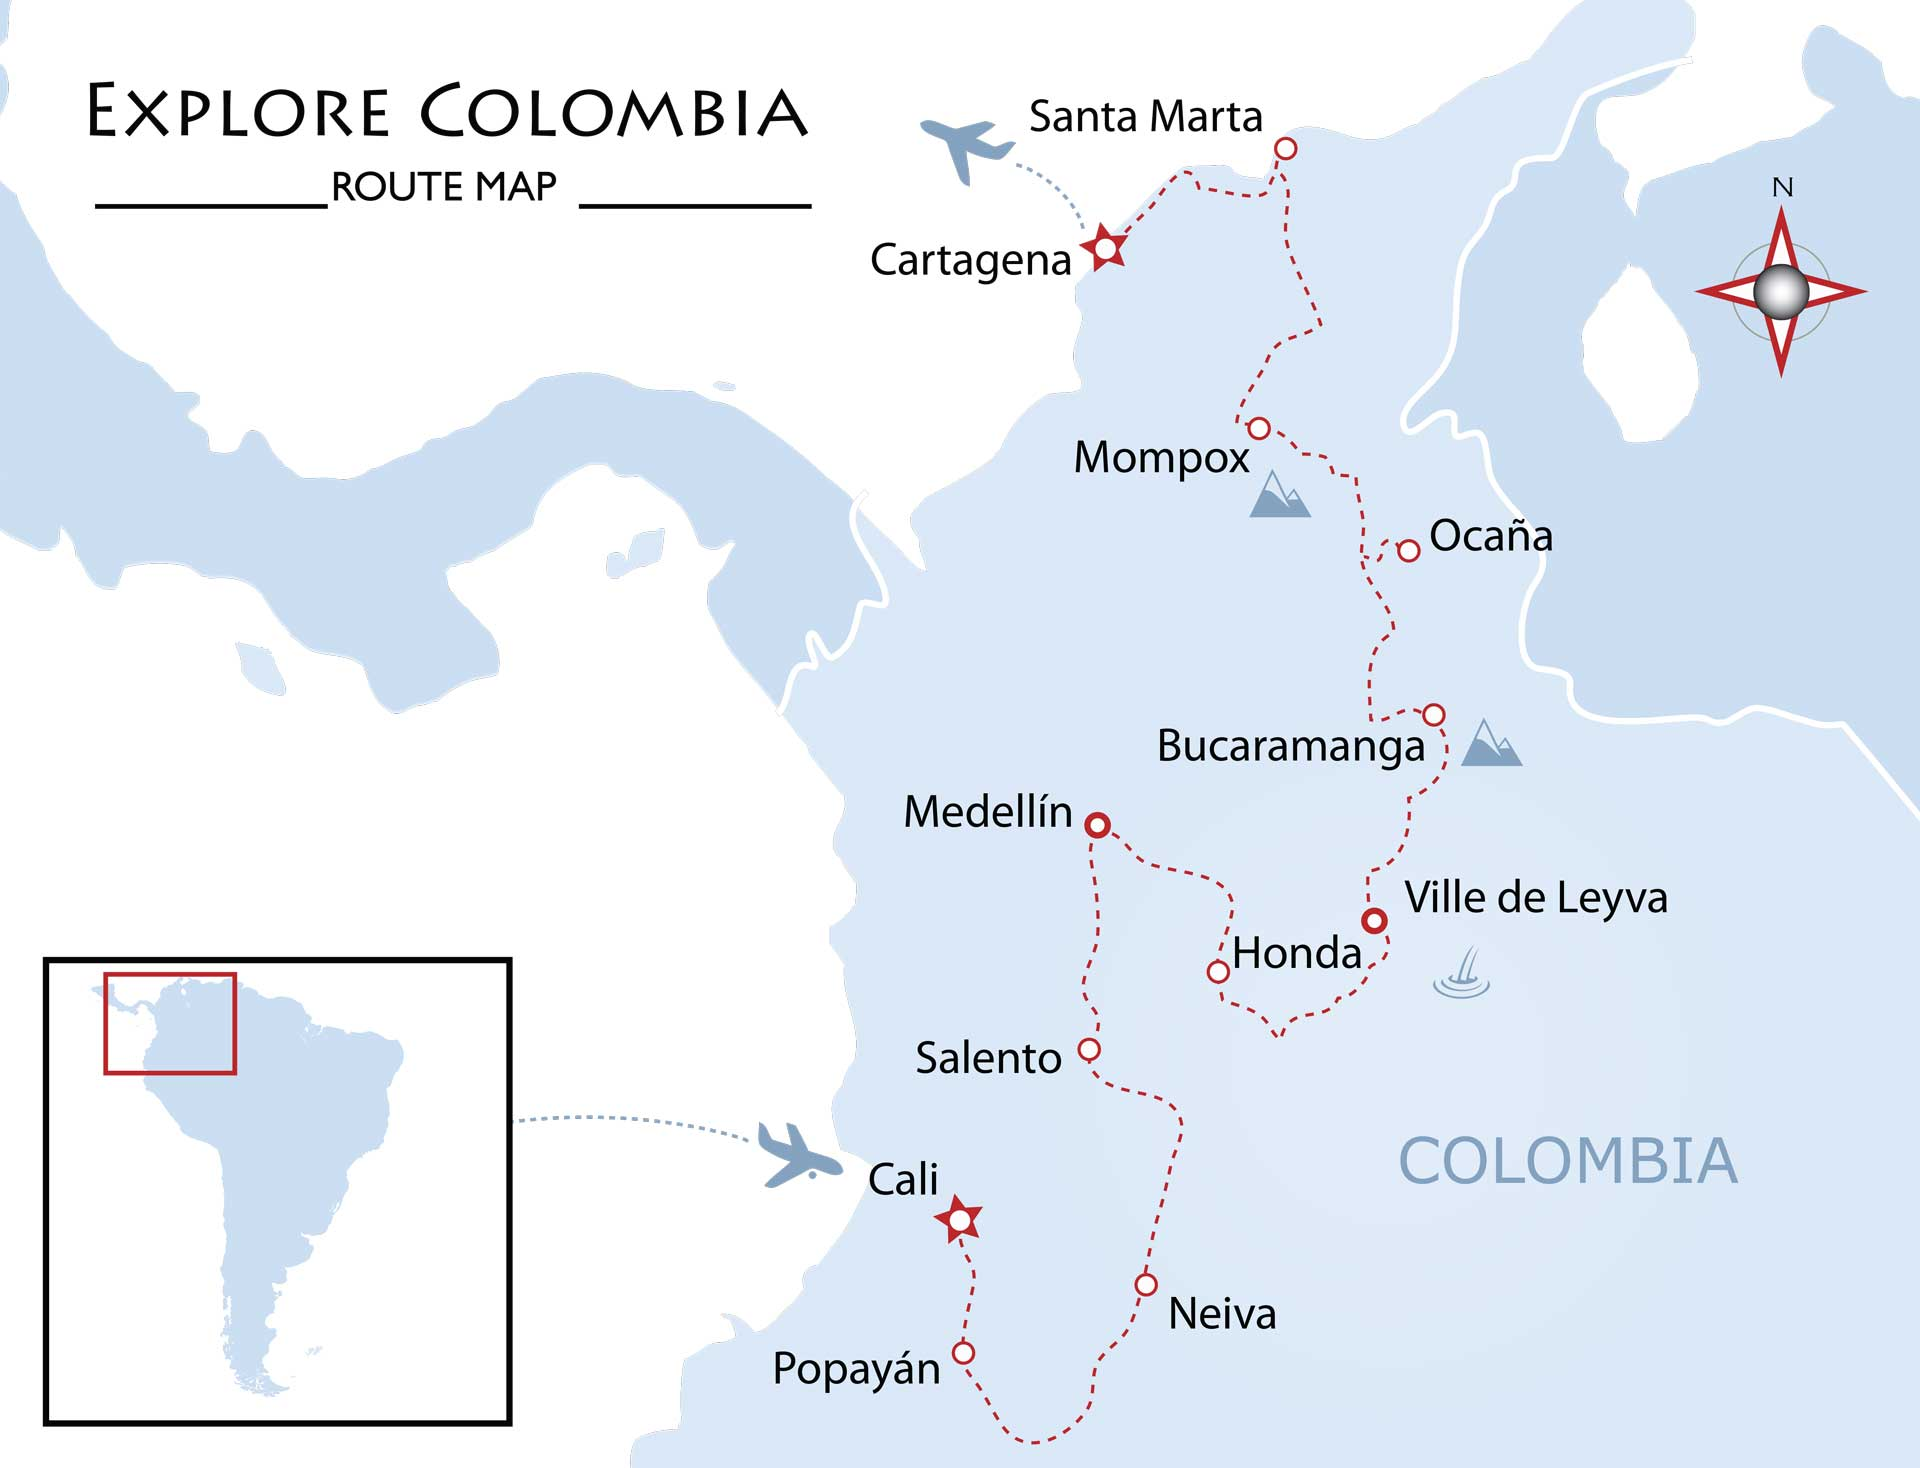 Explore Colombia Map